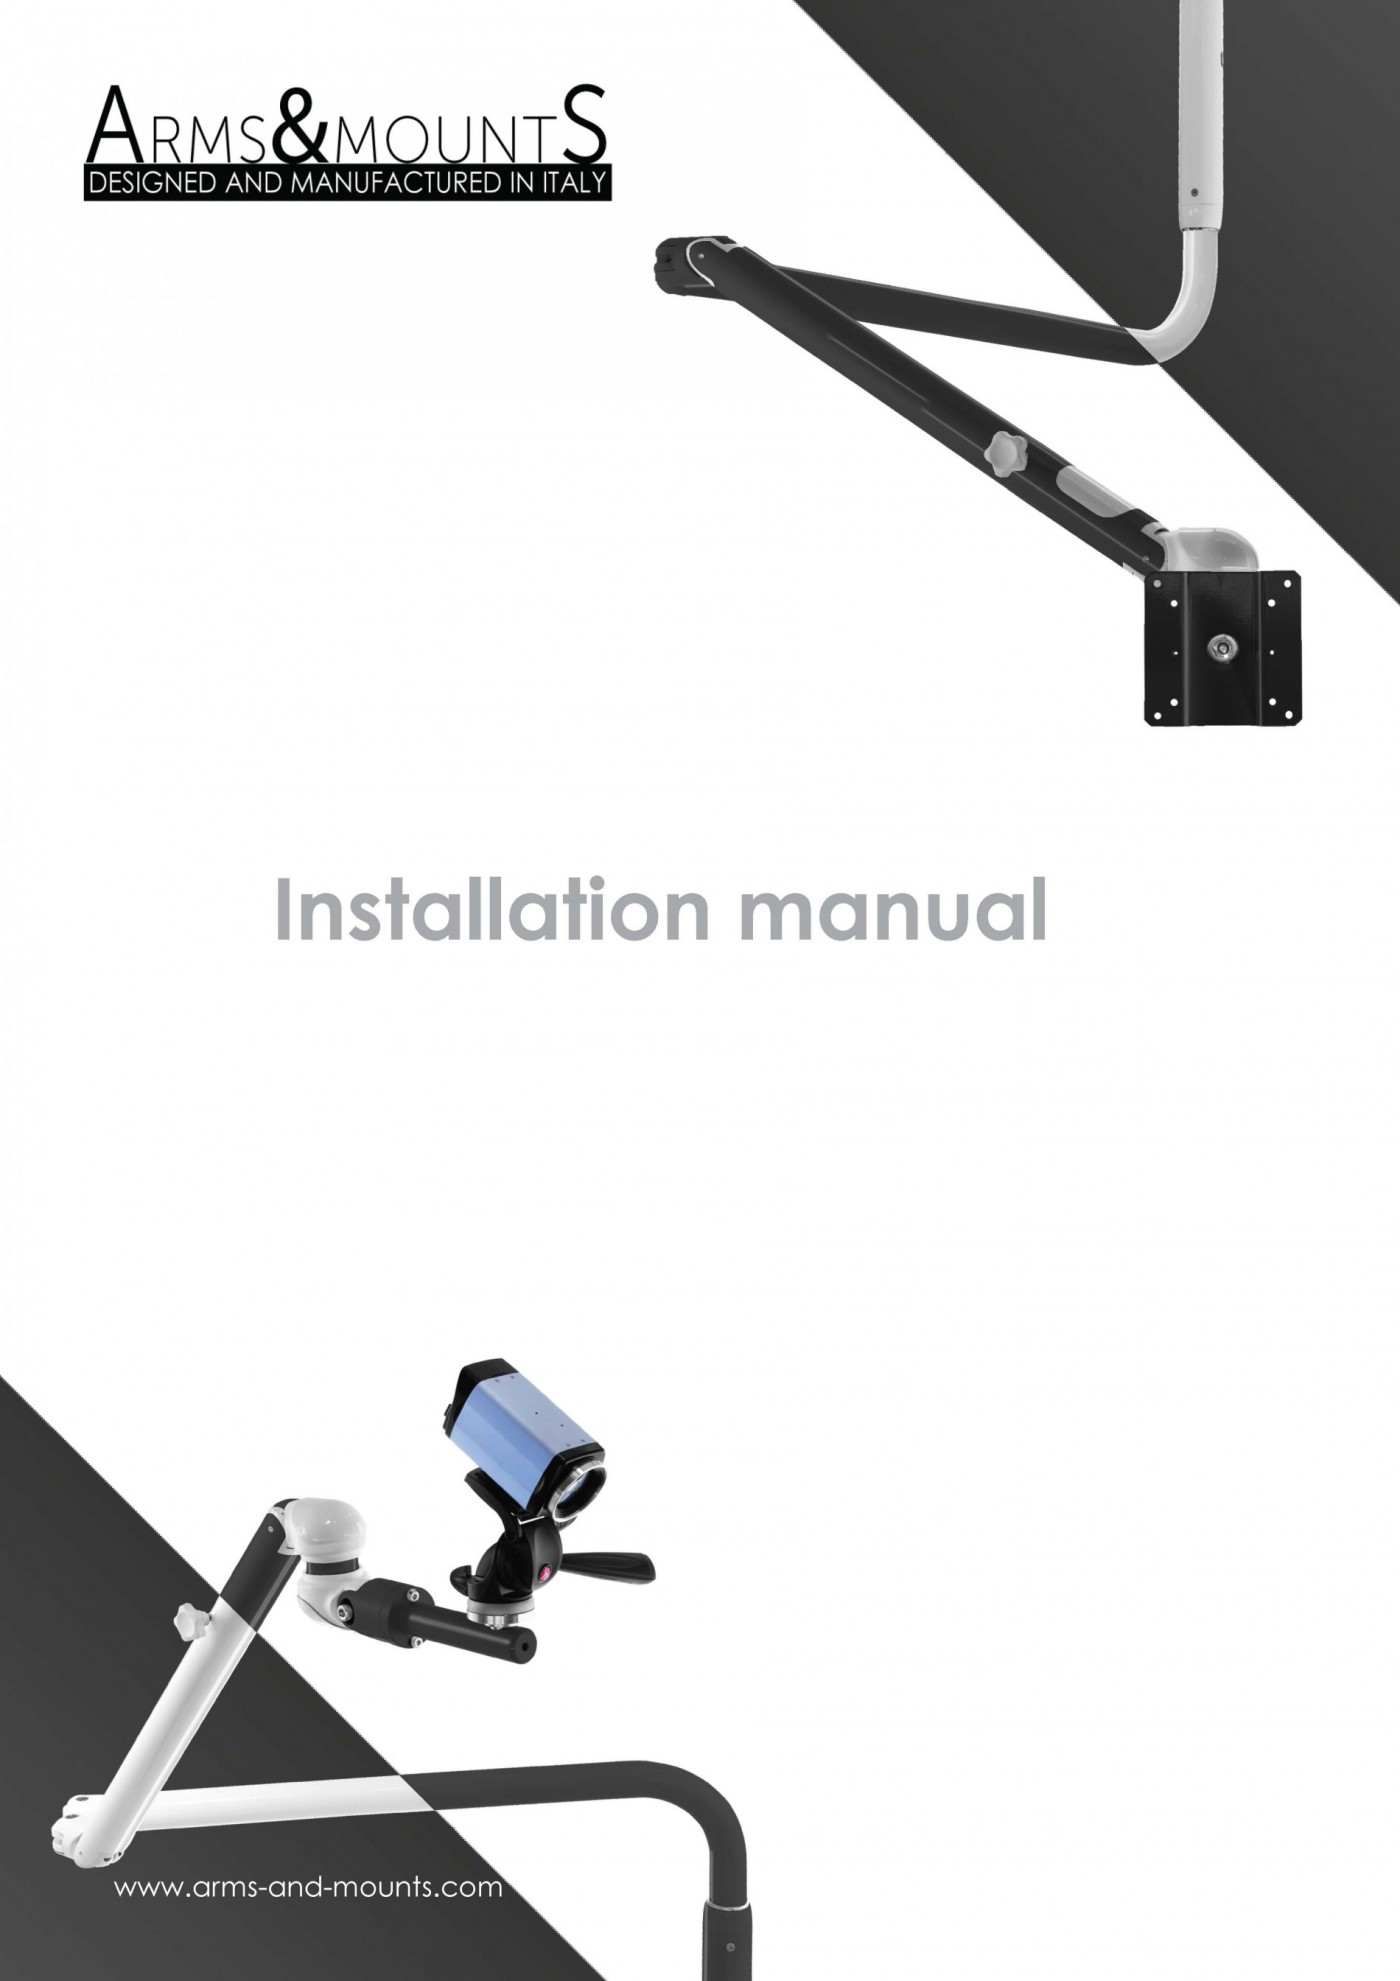 Manual arms and mounts, camera arm, ceiling installation